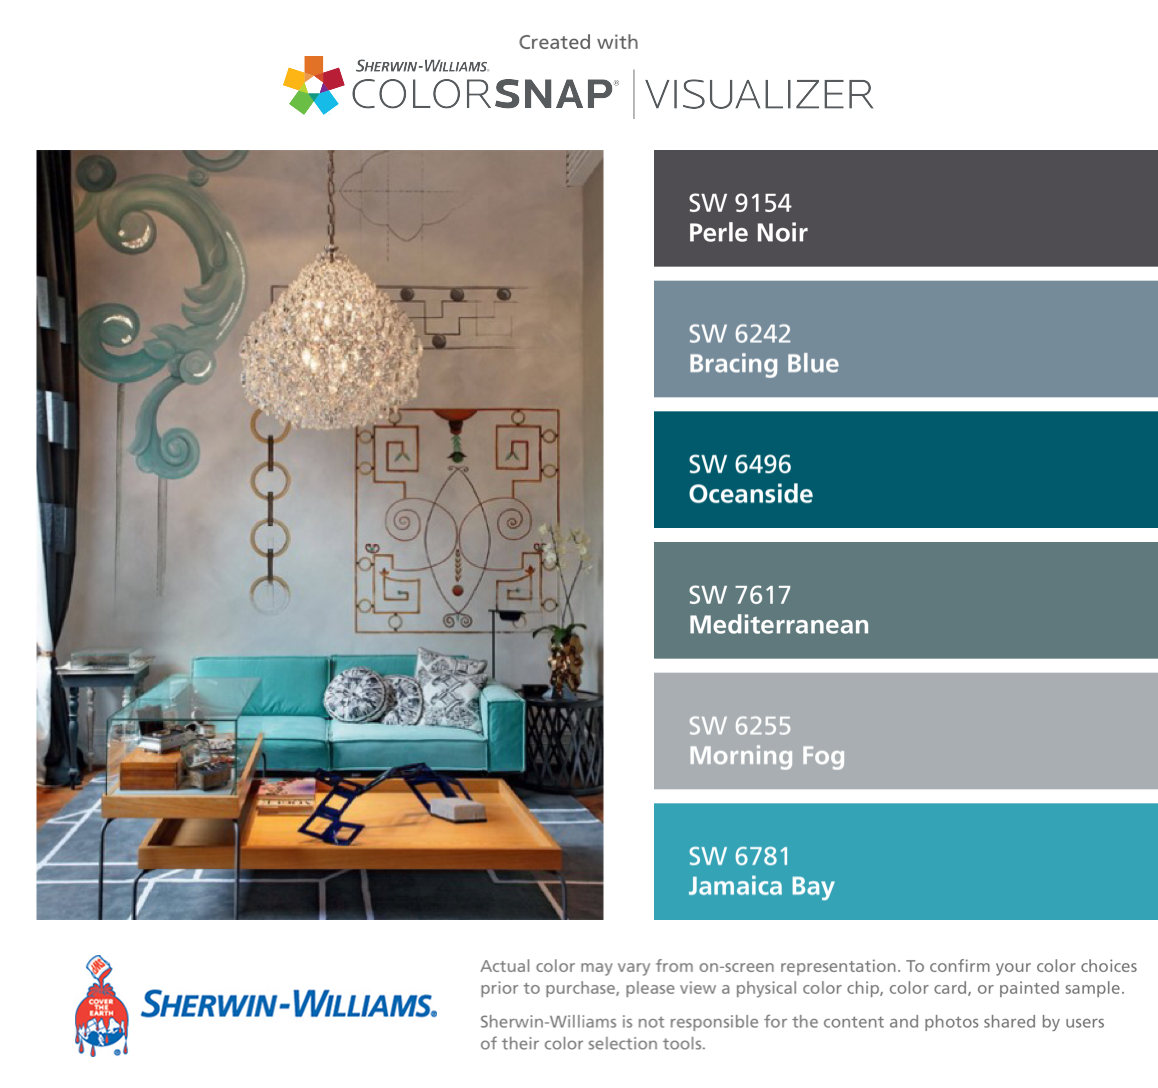 Exterior House Paint Color Visualizer | Sherwin Williams Visualizer | Color Visualizer